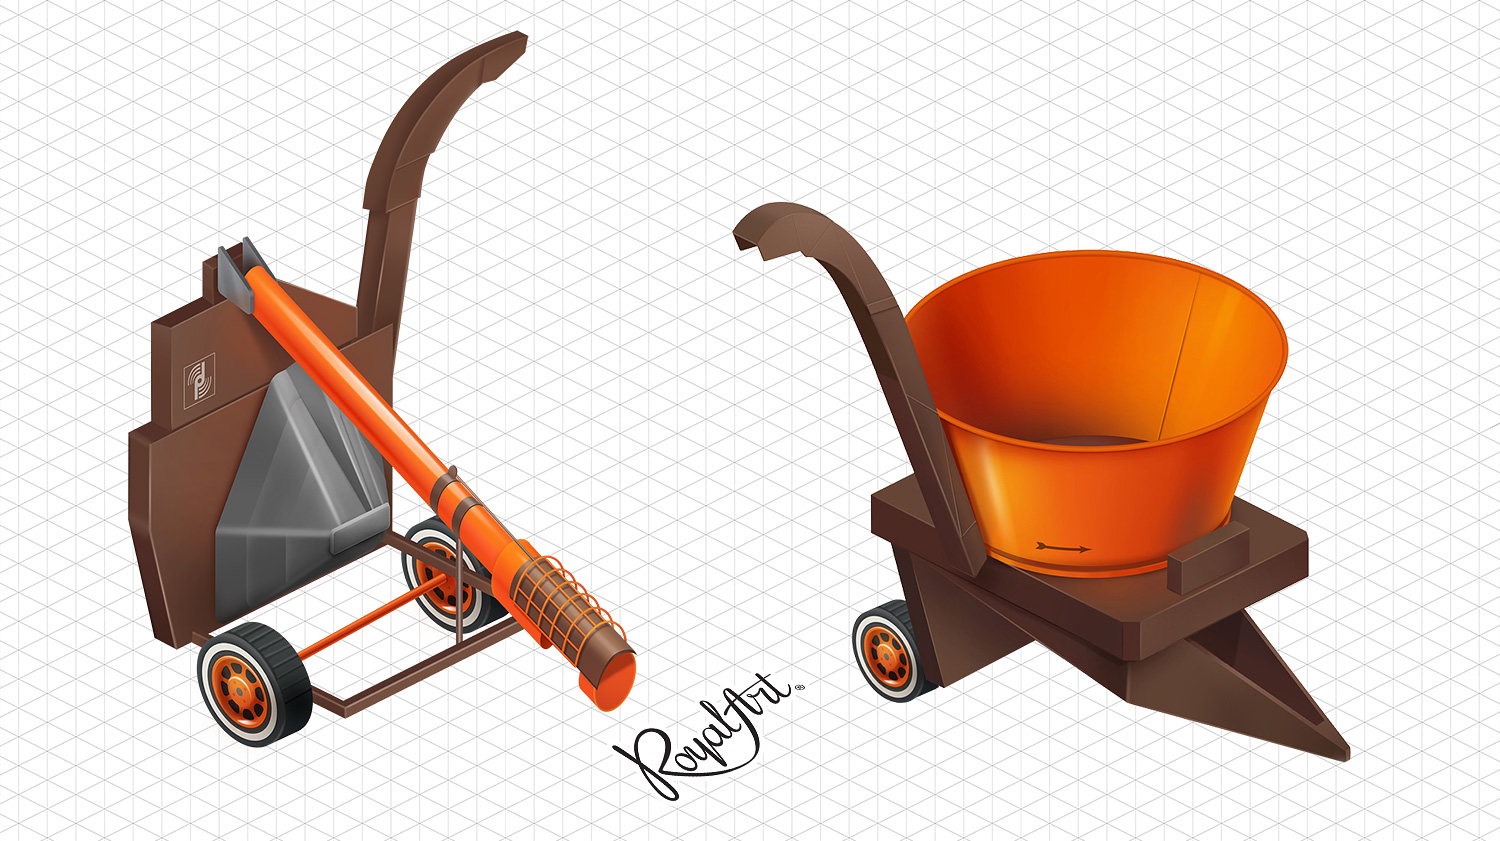 Grain grinder and straw chopper. Isometric illustrations for the AAT website. Advanced Agricultural Technologies.